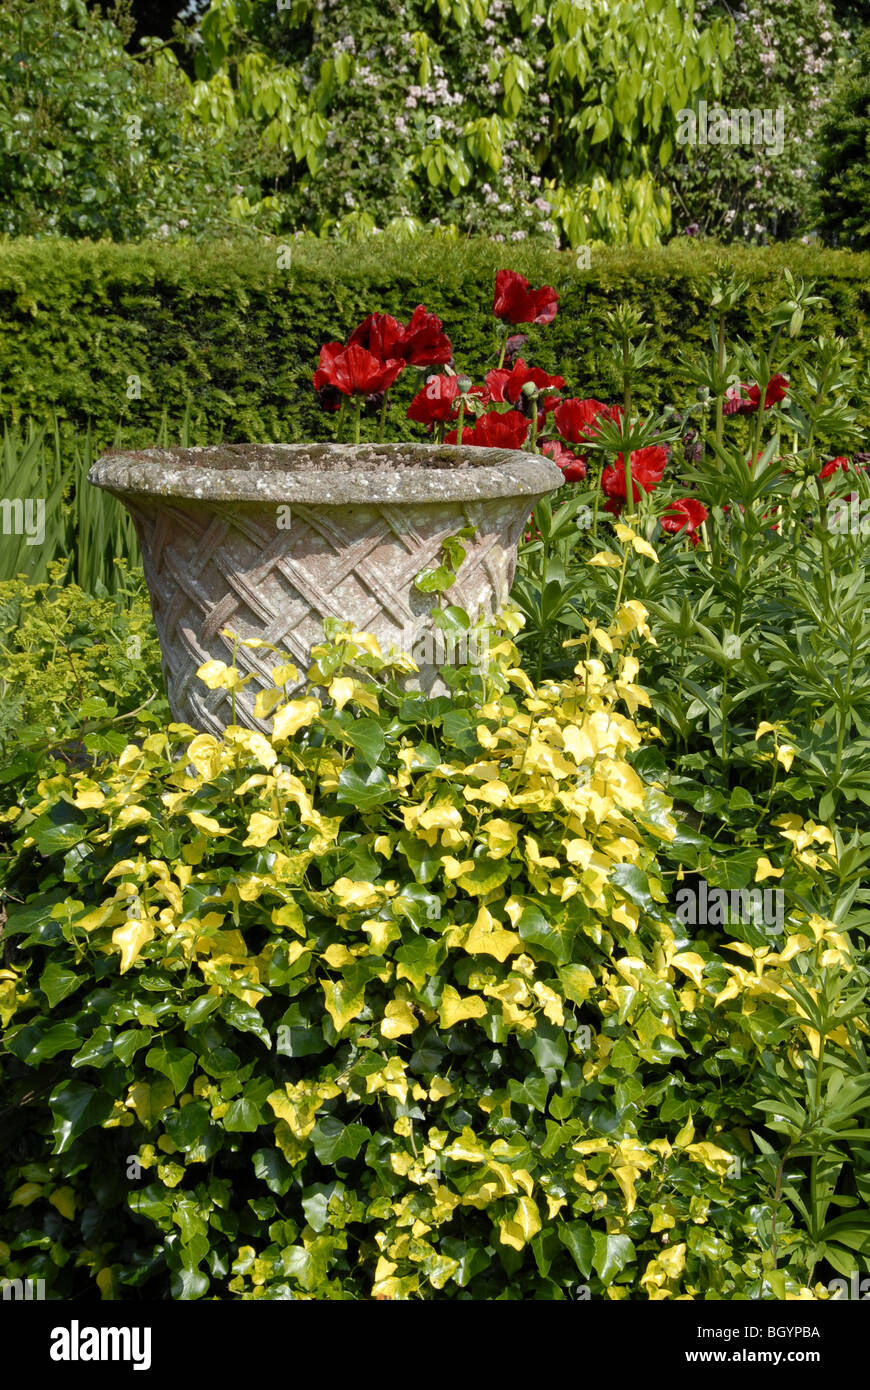 An English country garden scene with a concrete urn or large vase surrounded by plants and flowers. - Stock Image